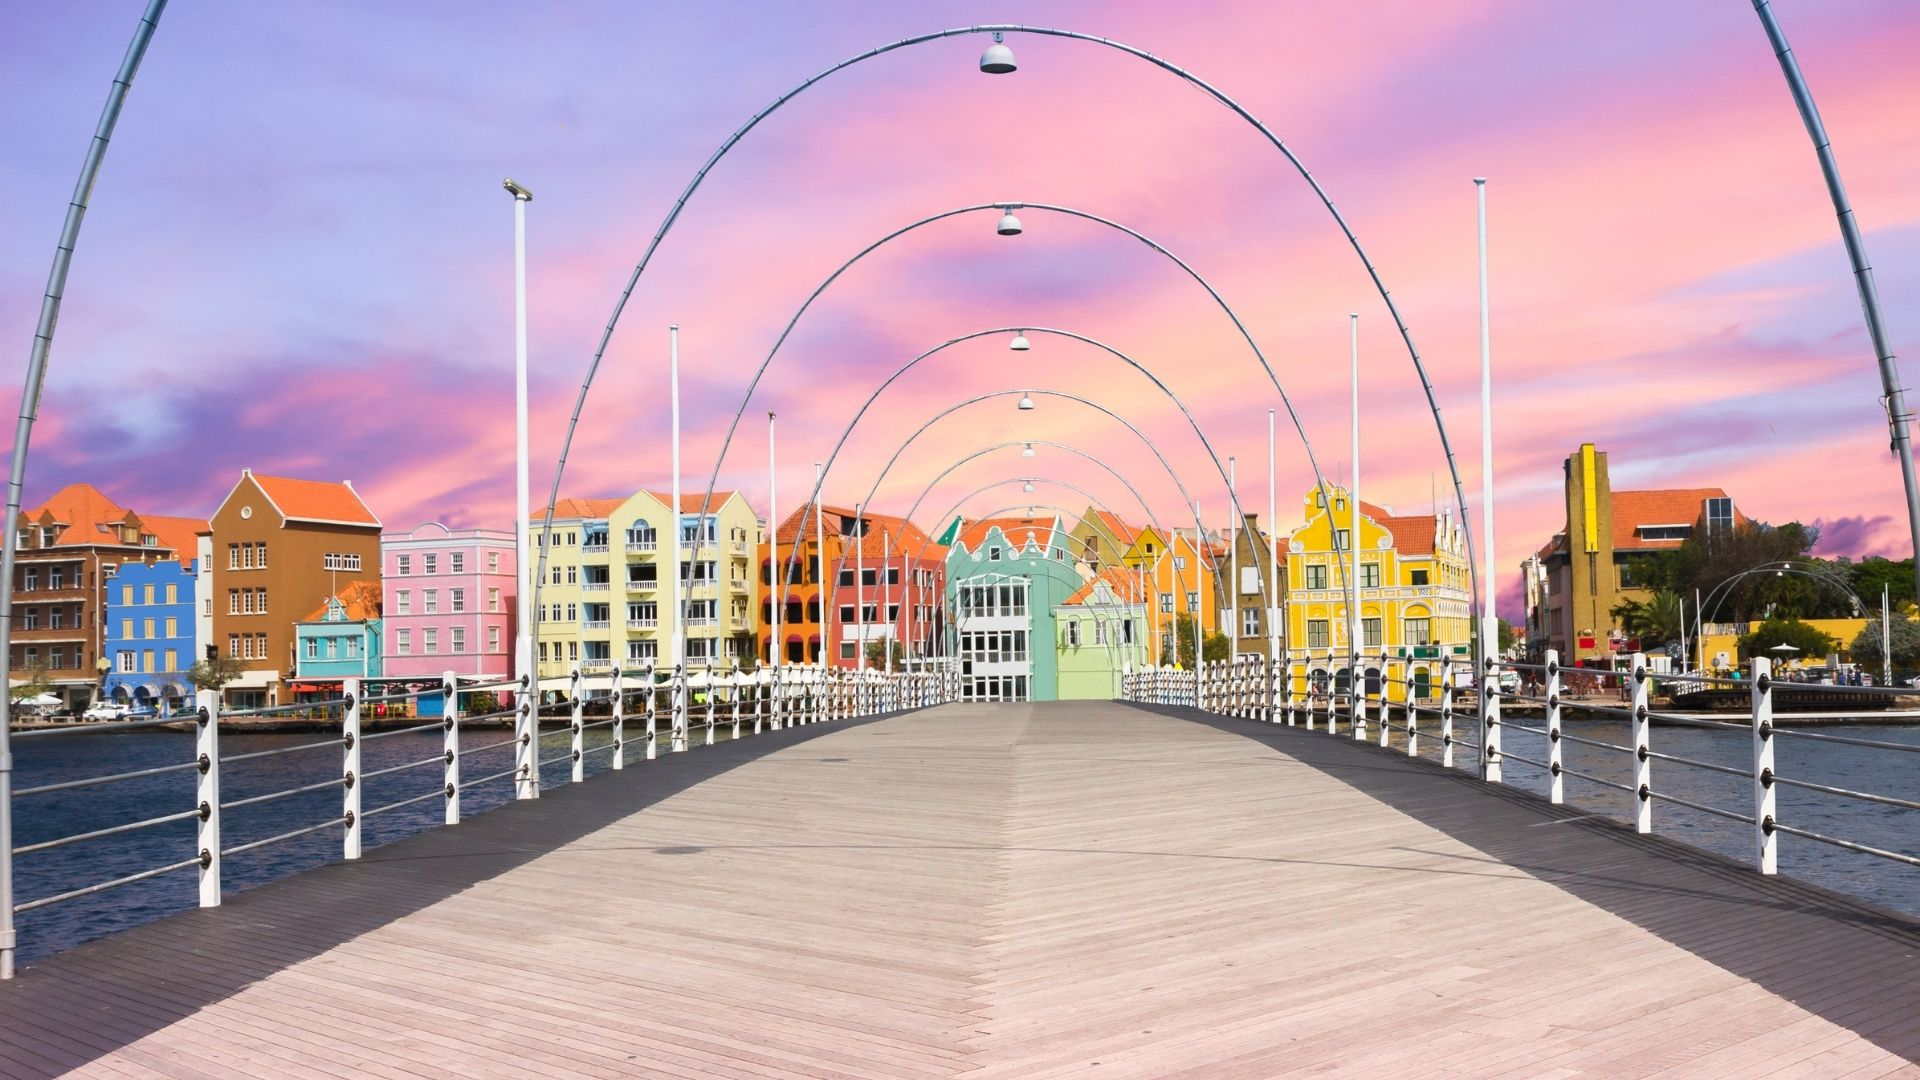 curacao island queen Emma pontoon bridge